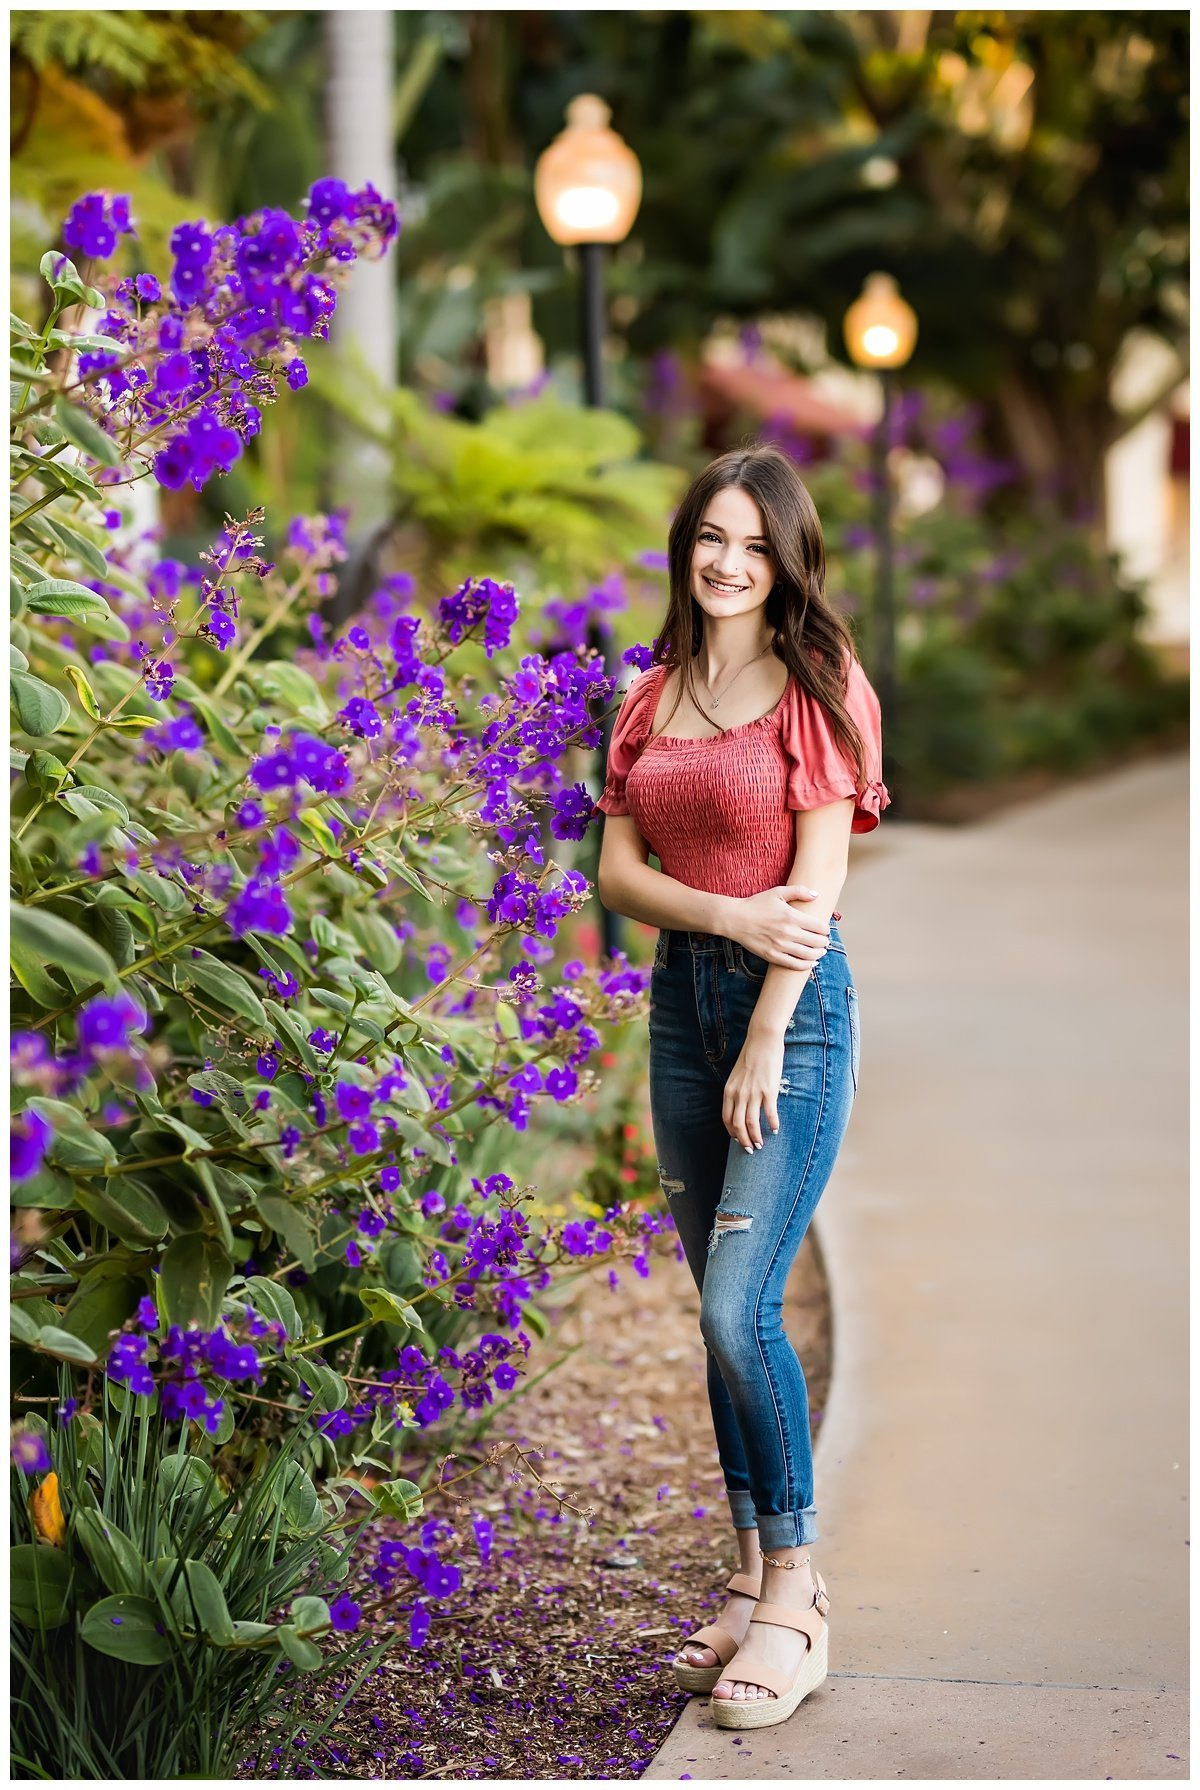 Coronado Senior Portraits